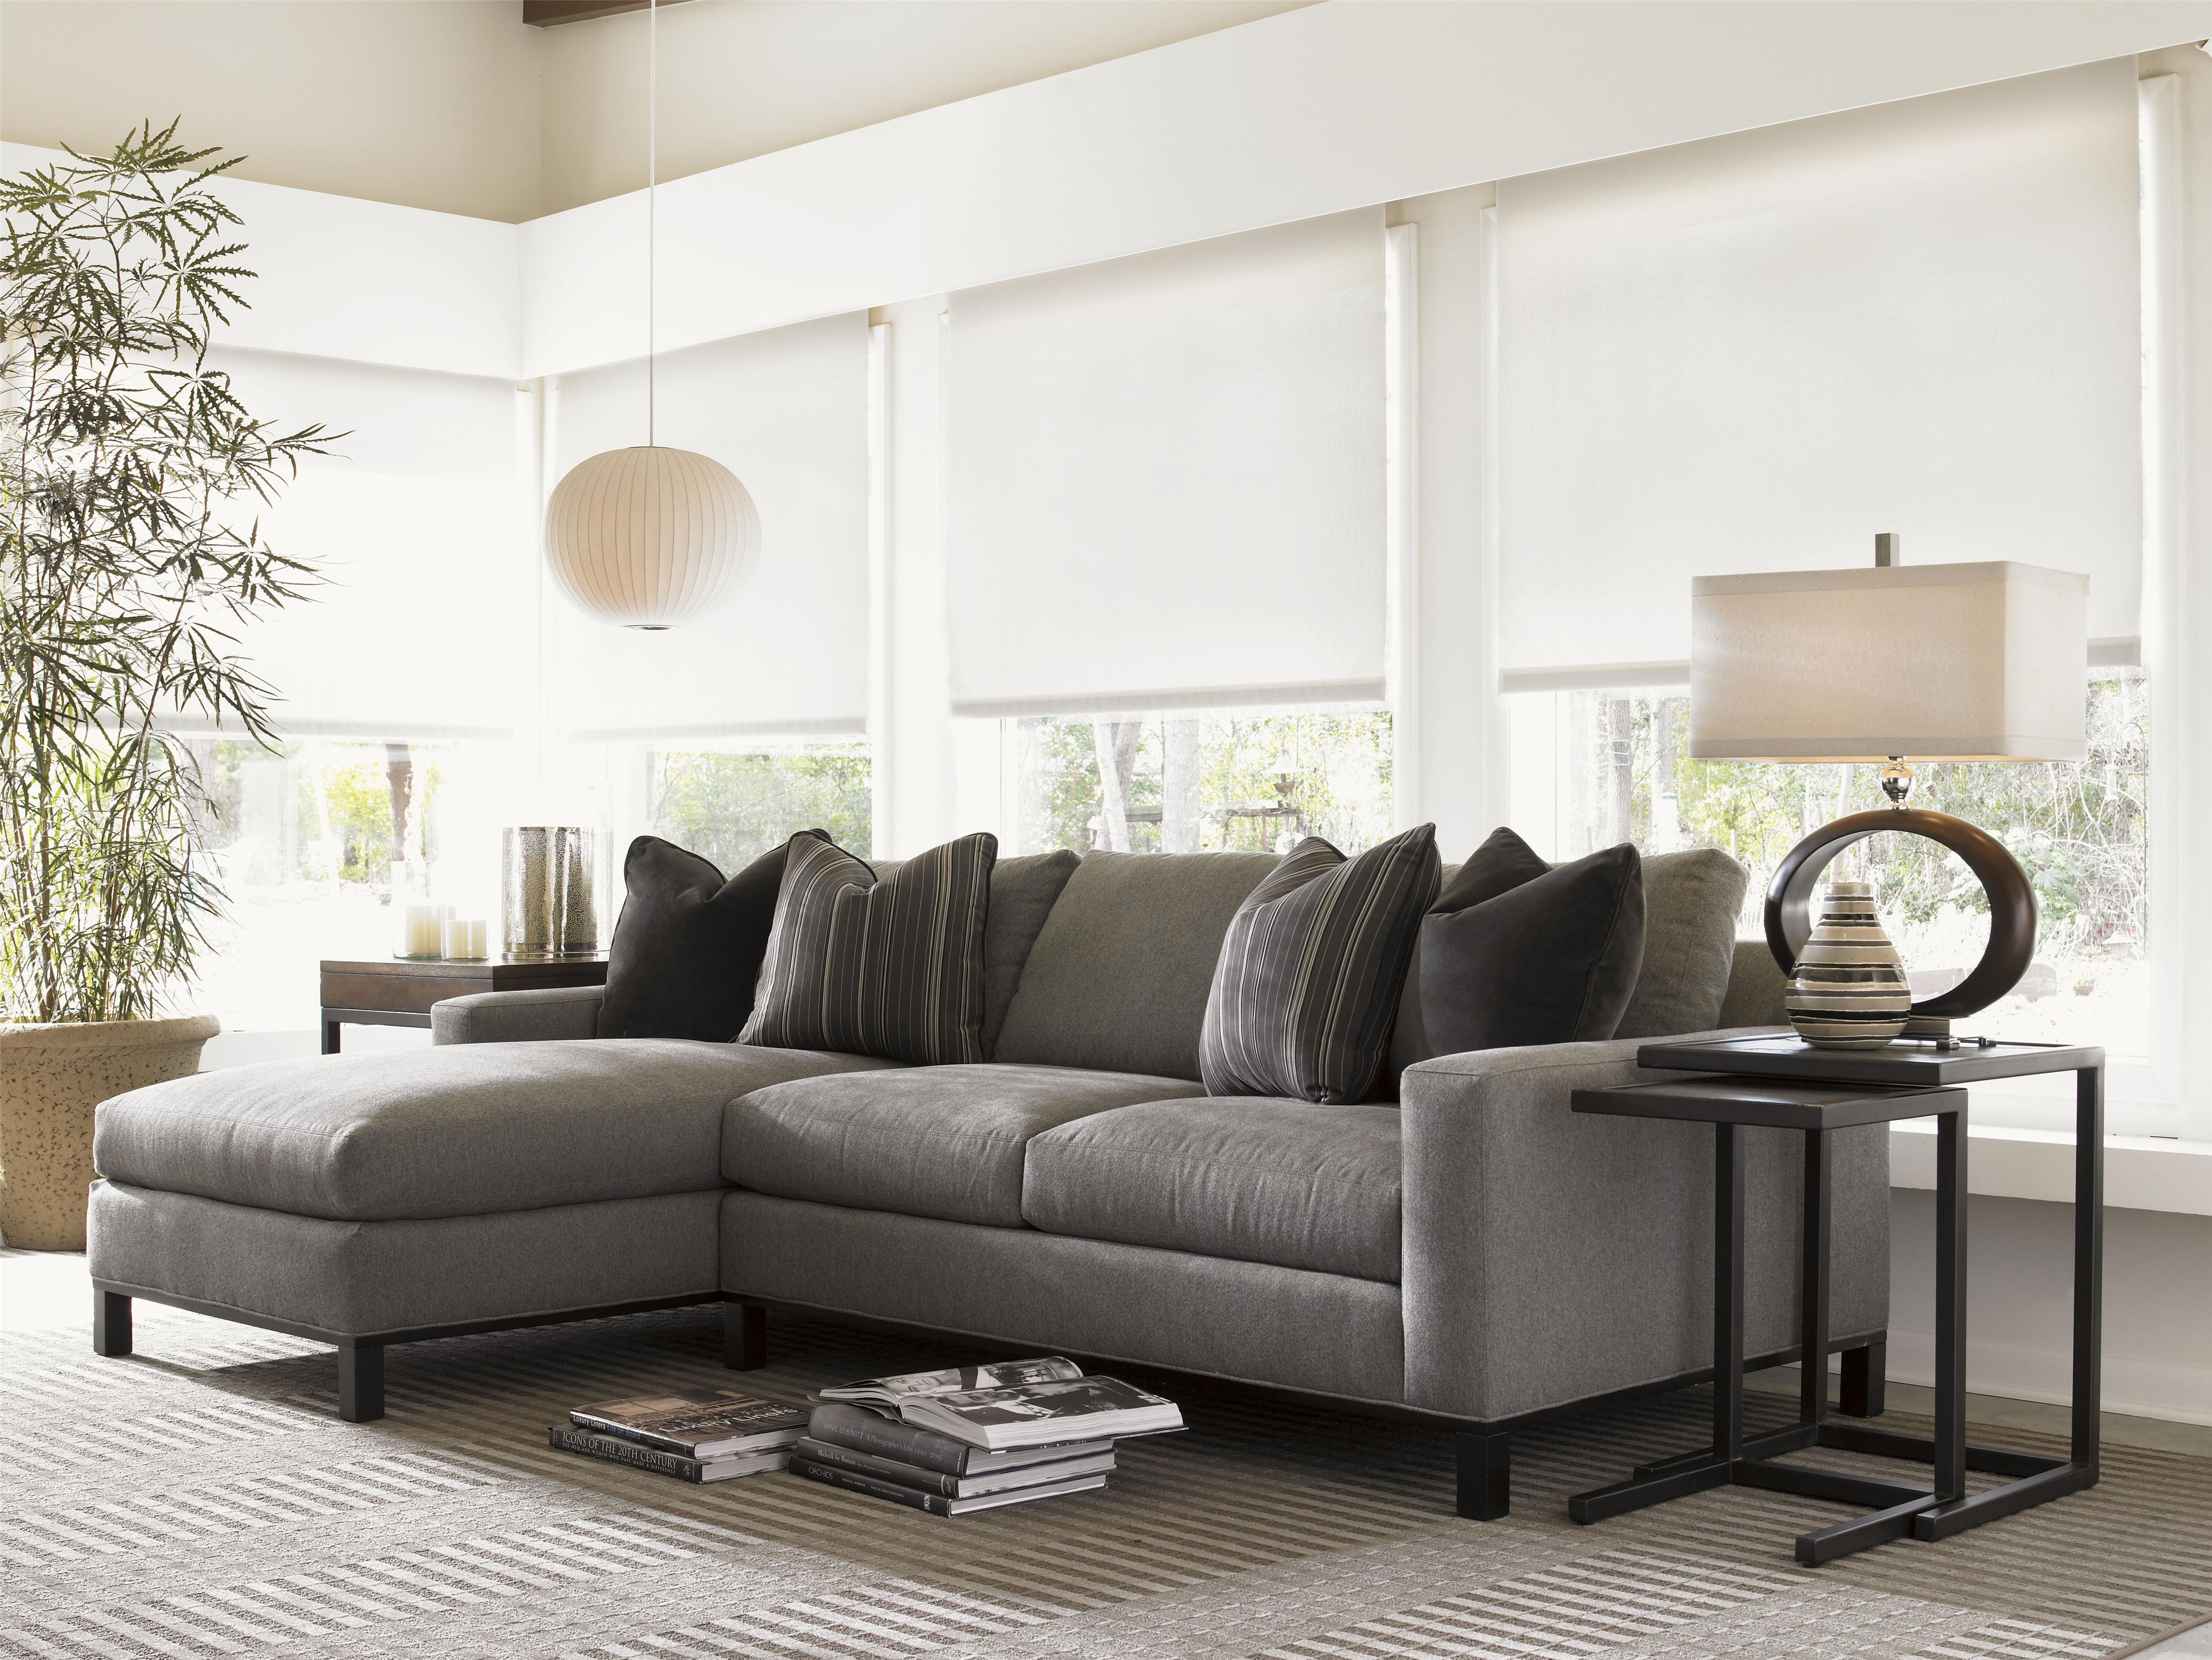 11 South 456 by Lexington Belfort Furniture